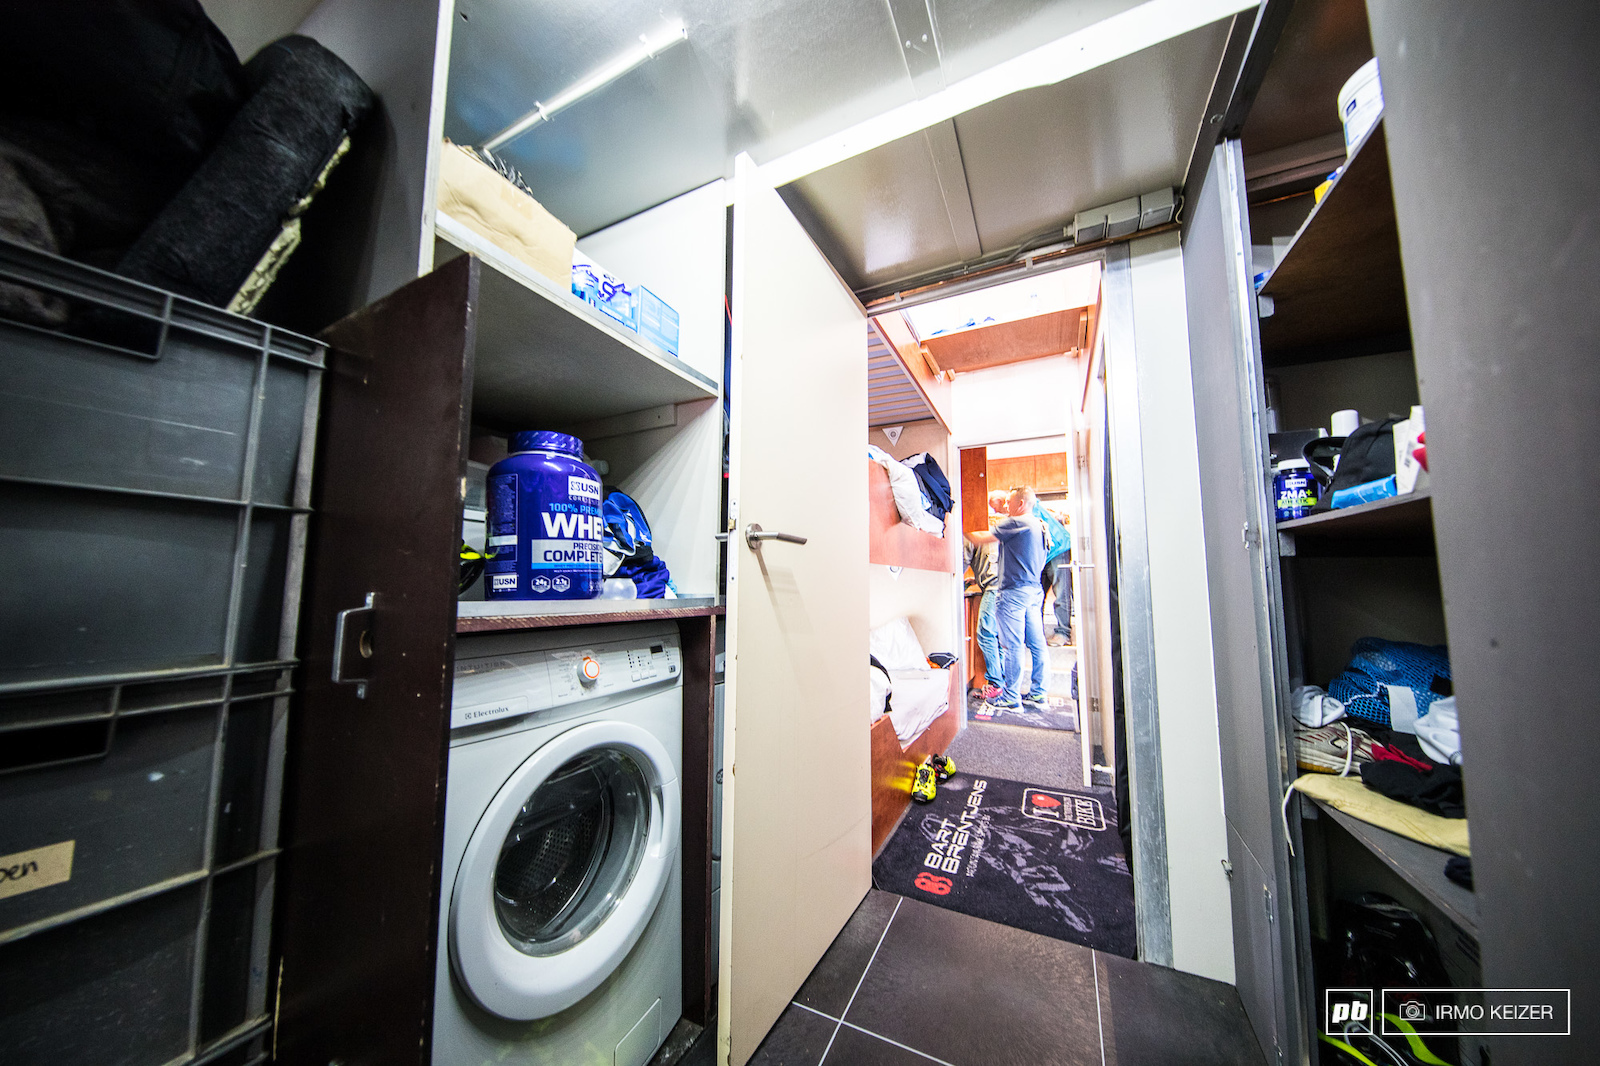 Spare parts provisions water bottles tyres and a washer dryer setup.